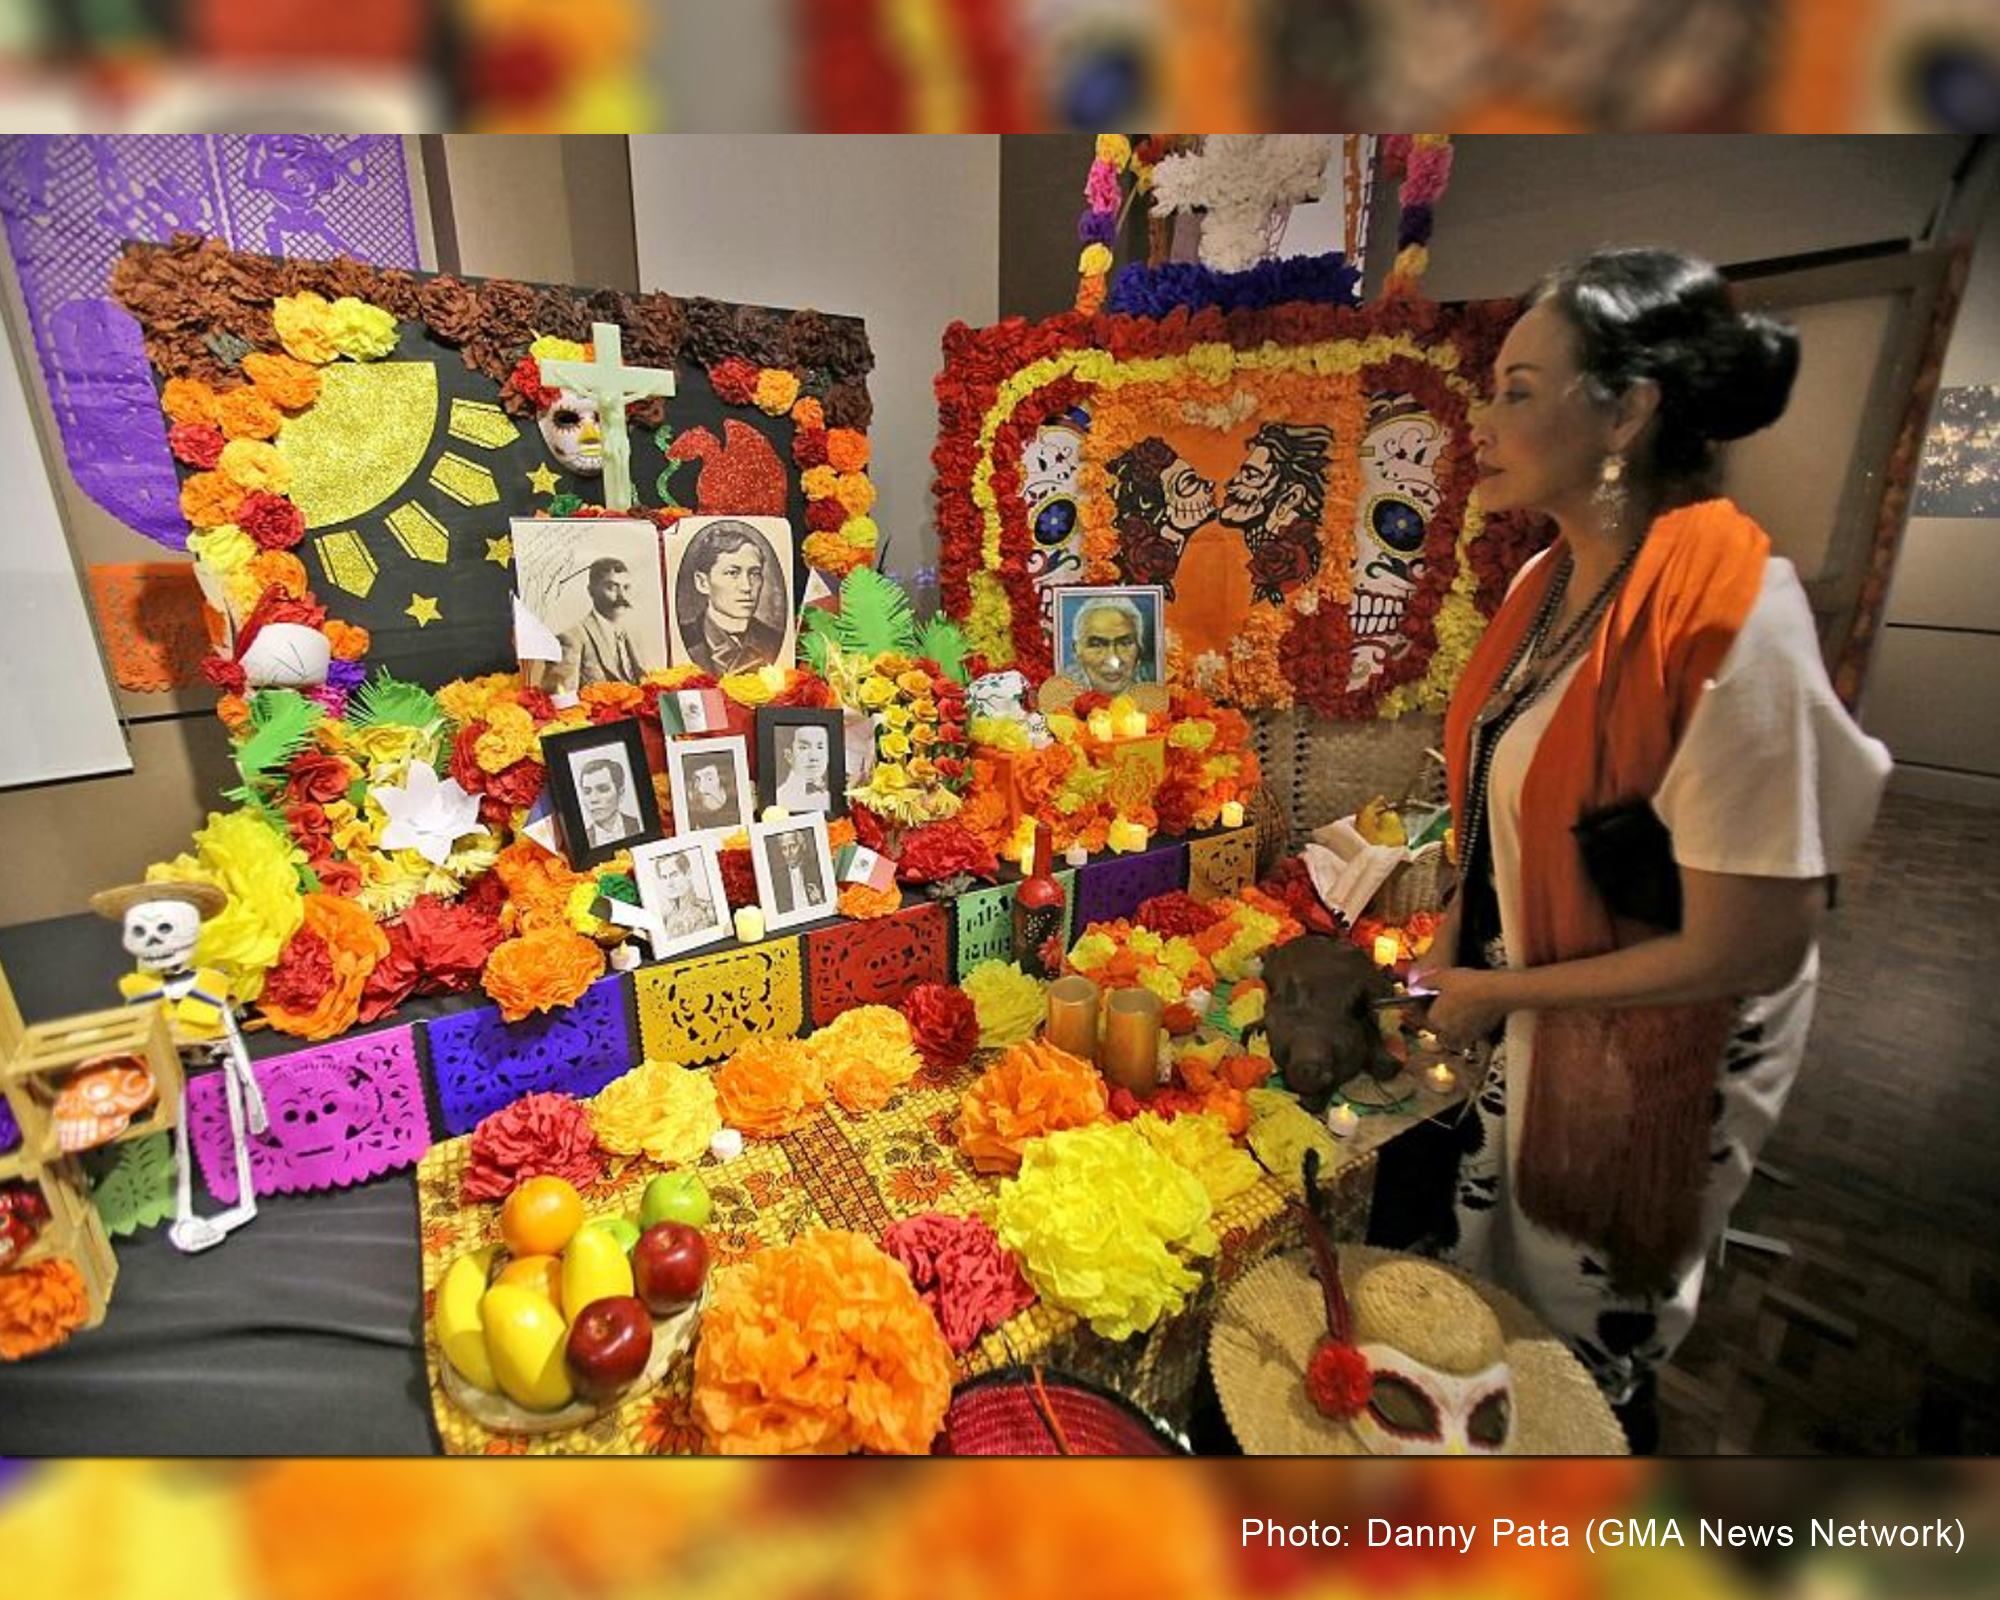 Mexican Embassy in the PHL celebrates Dia de Los Muertos with face paint, exhibit | GMA News Network